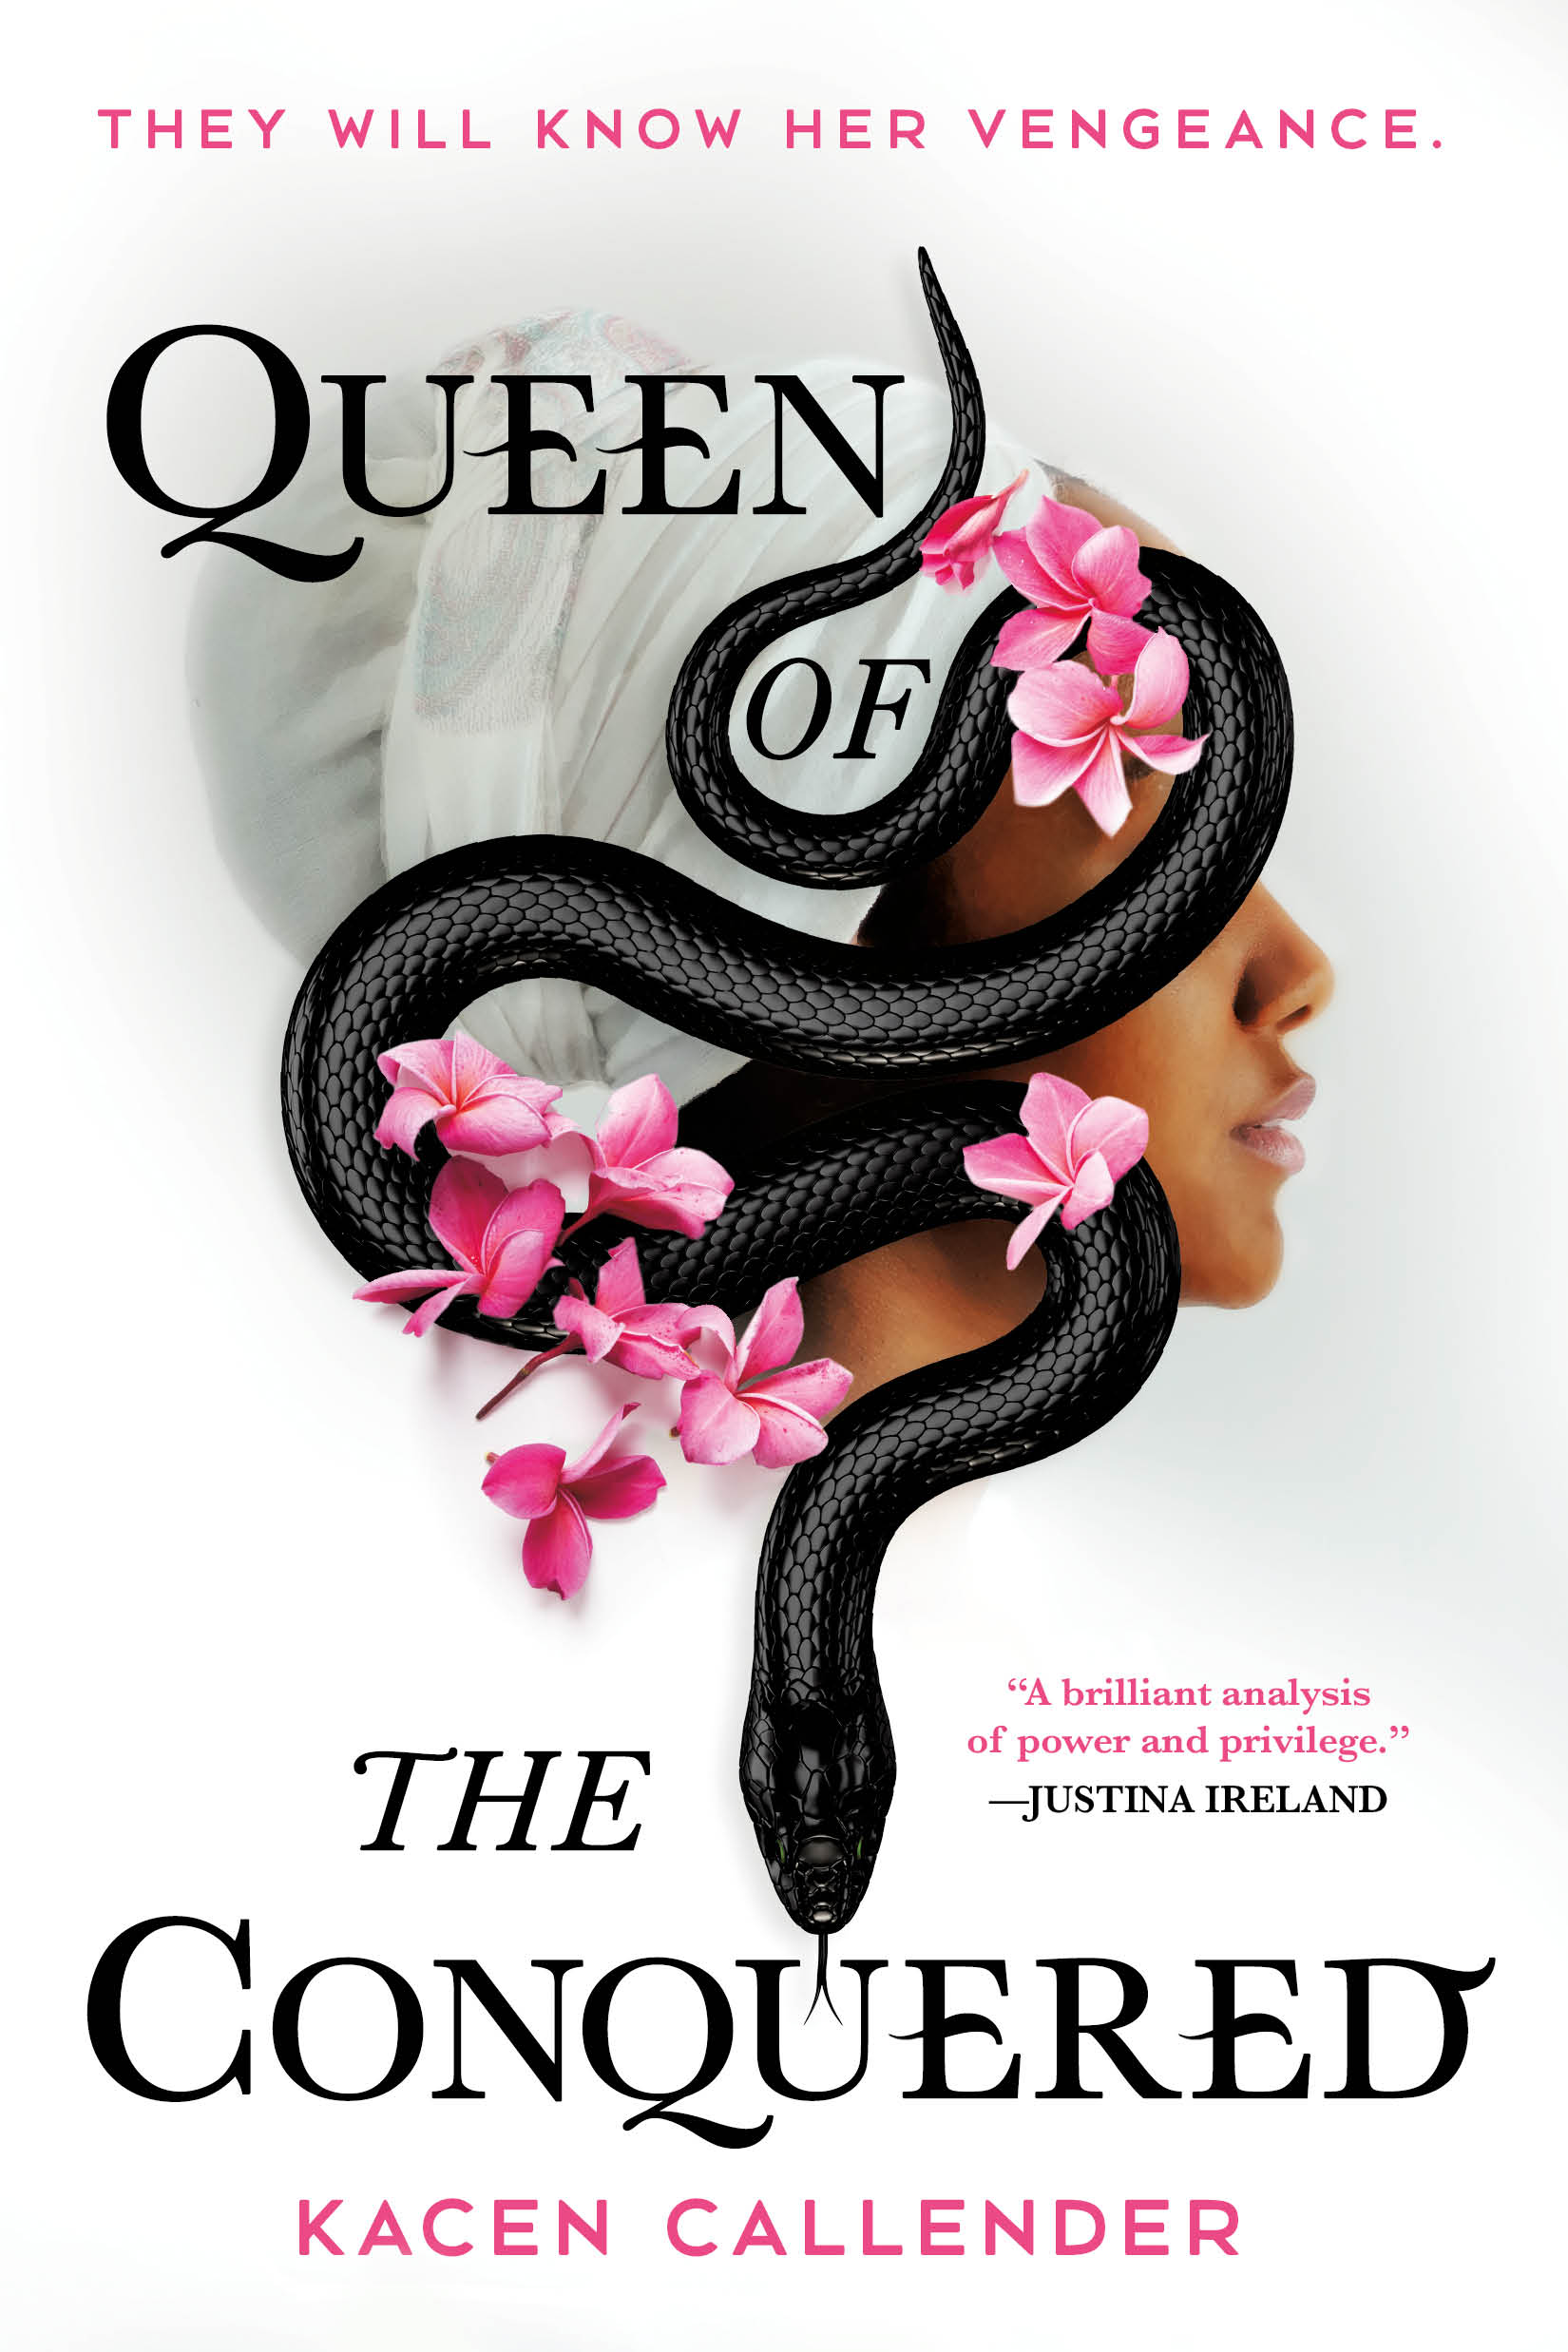 QUEEN OF THE CONQUERED wins the 2020 WORLD FANTASY AWARD